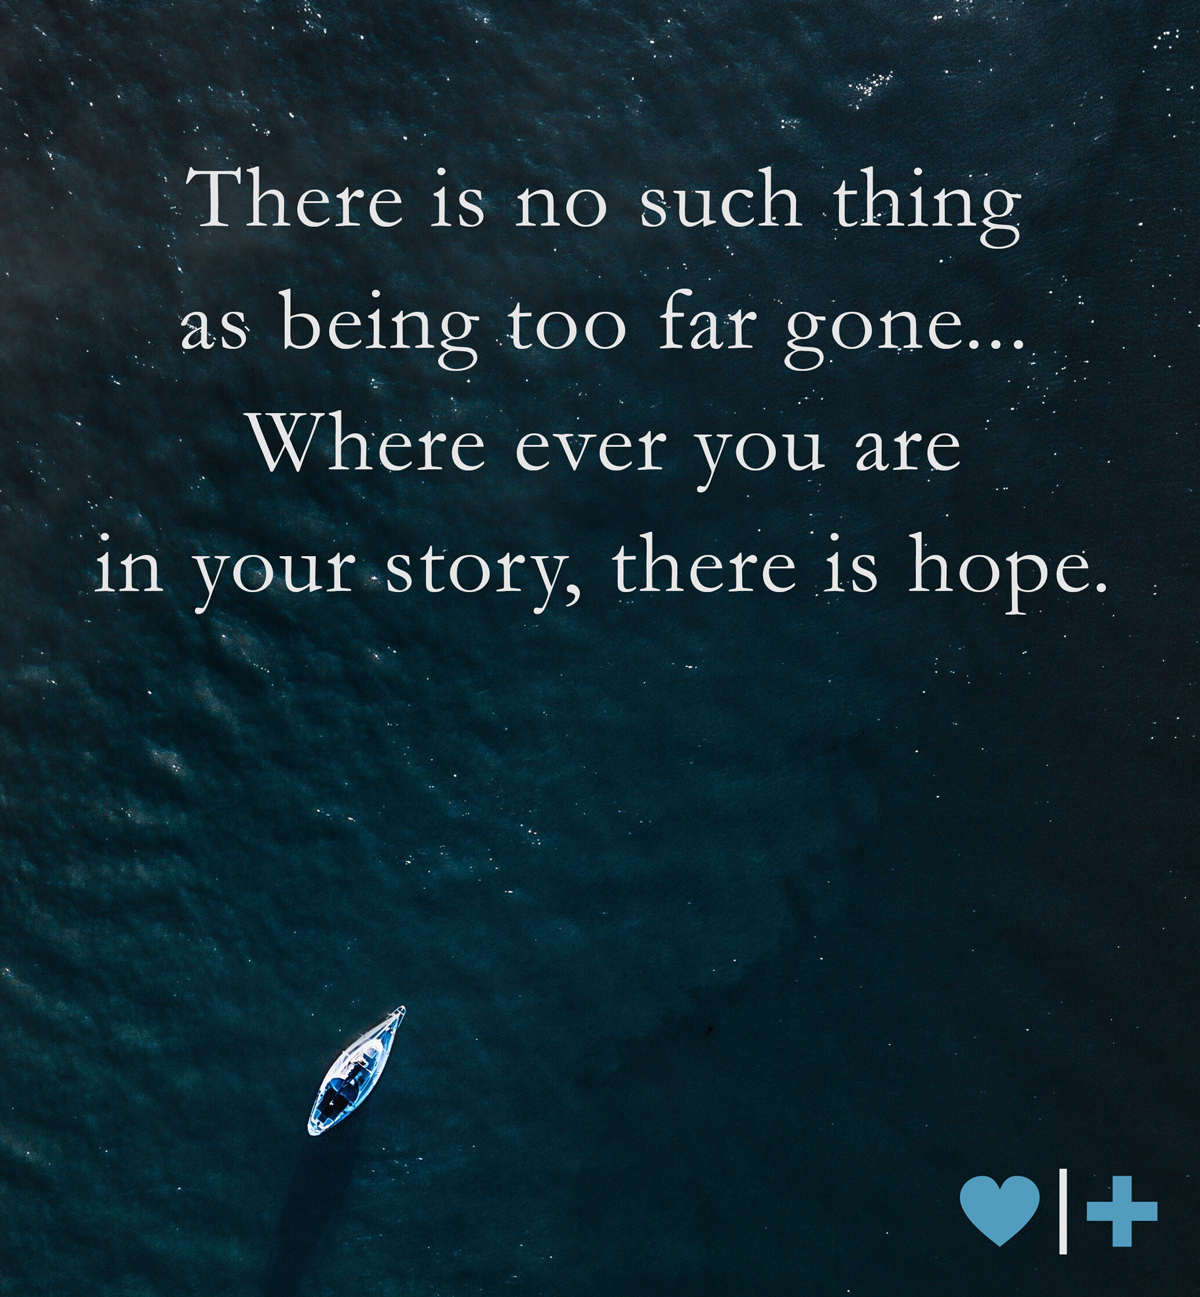 There is no such thing as being too far gone. Where ever you are in your story, there is hope.